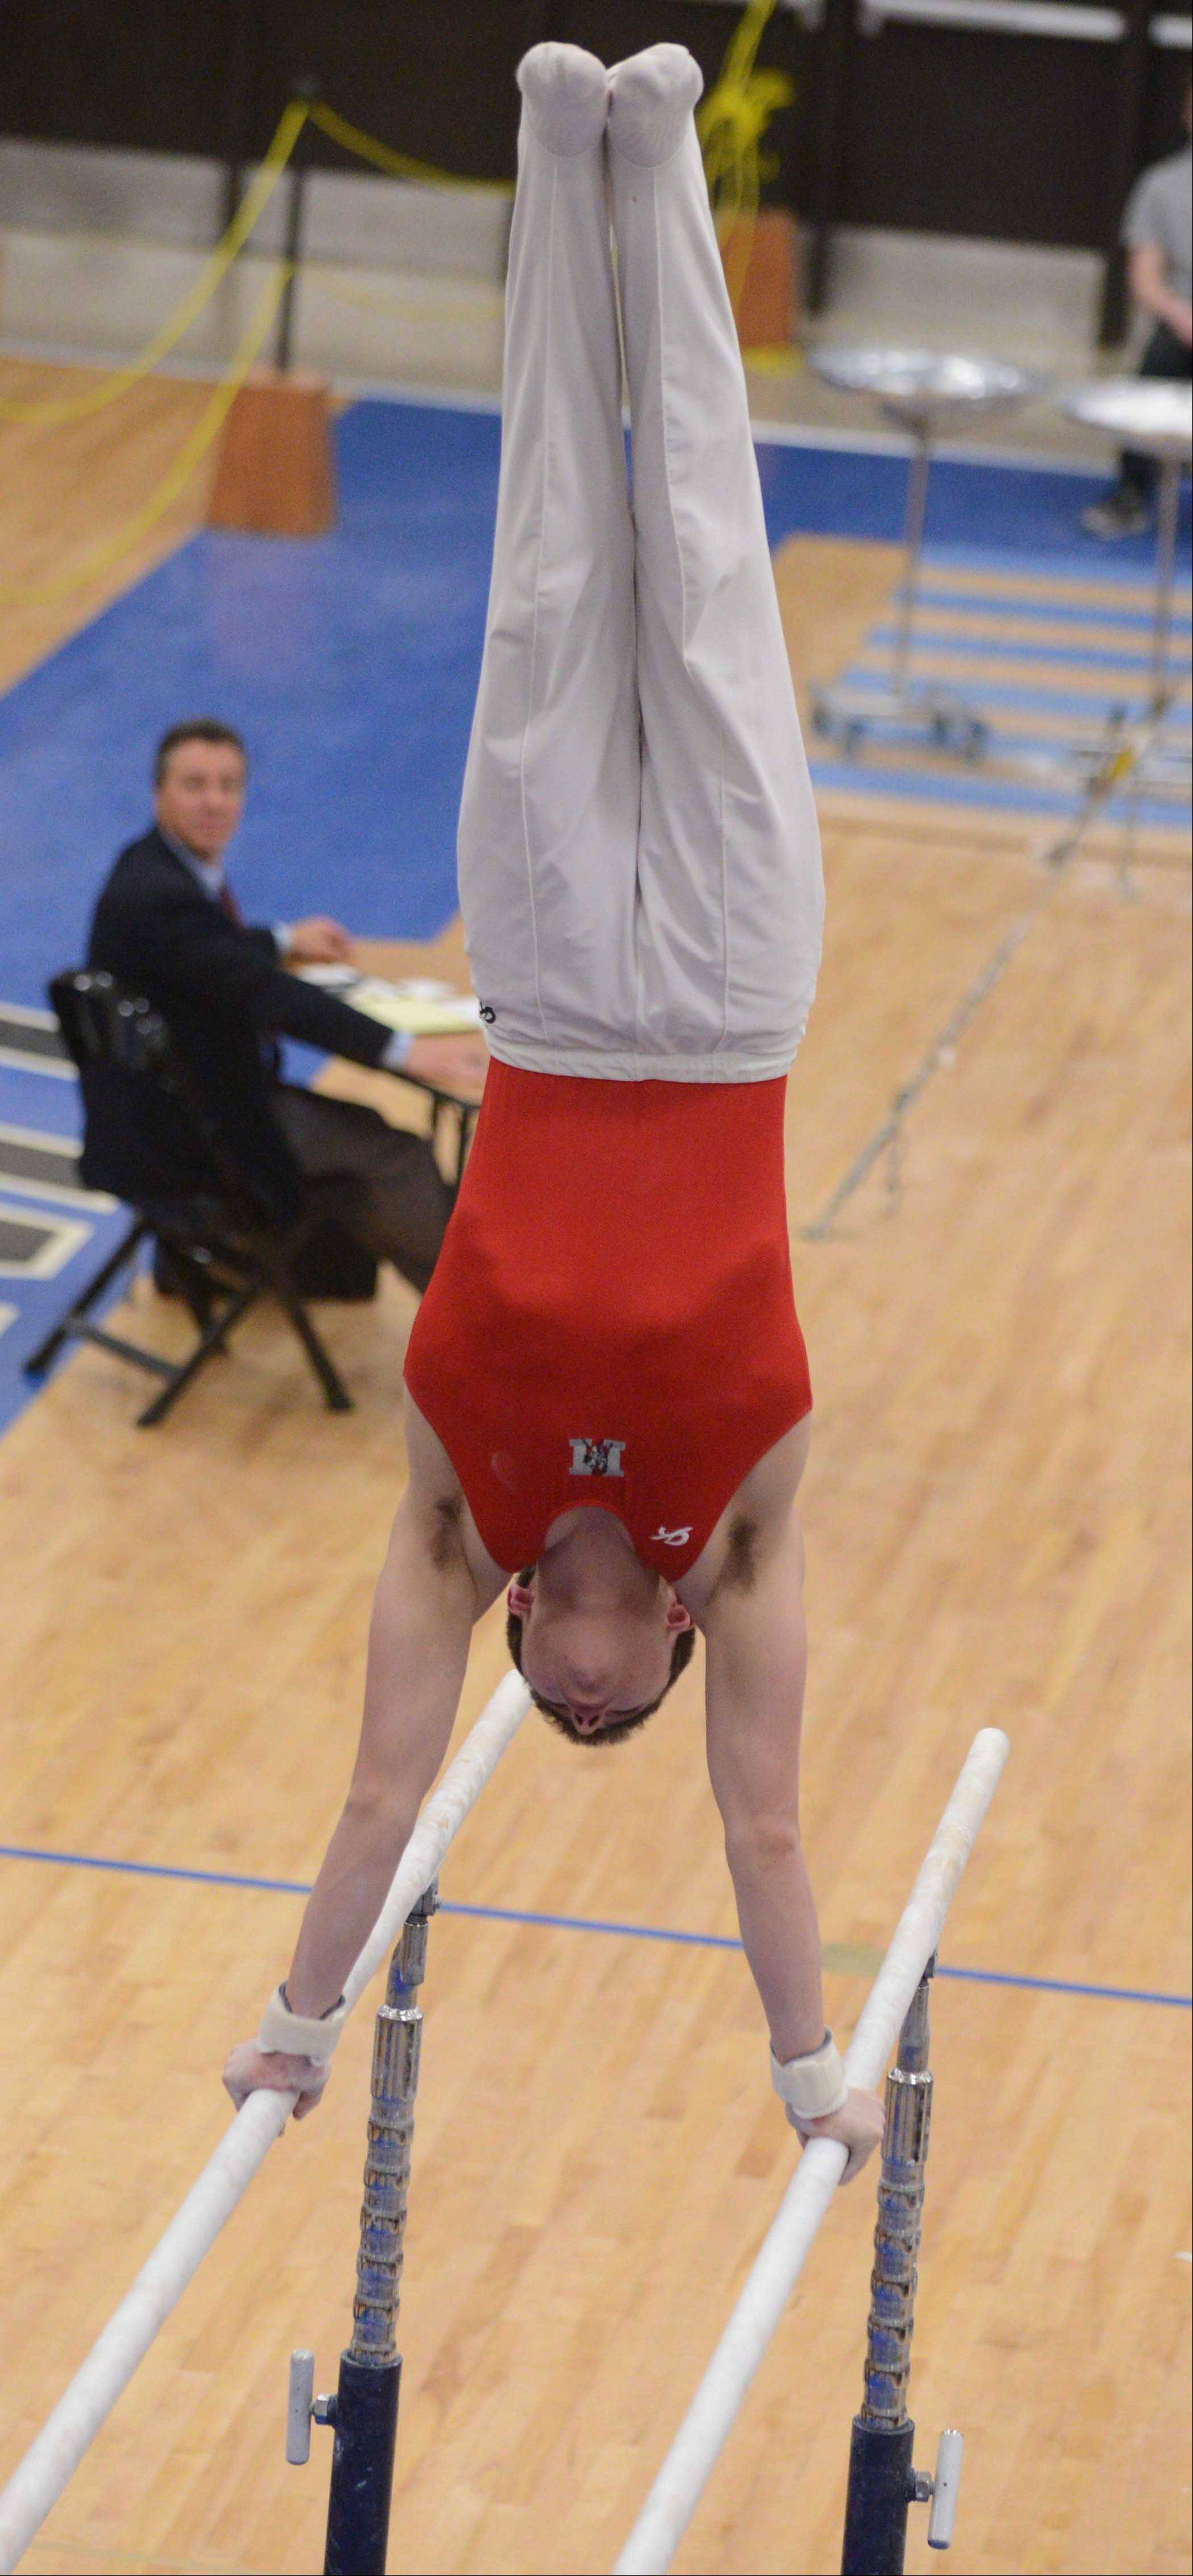 Colin McCarthy of Mundelein performs on parallel bars during the boys gymnastics state finals at Lincoln-Way East on Saturday.